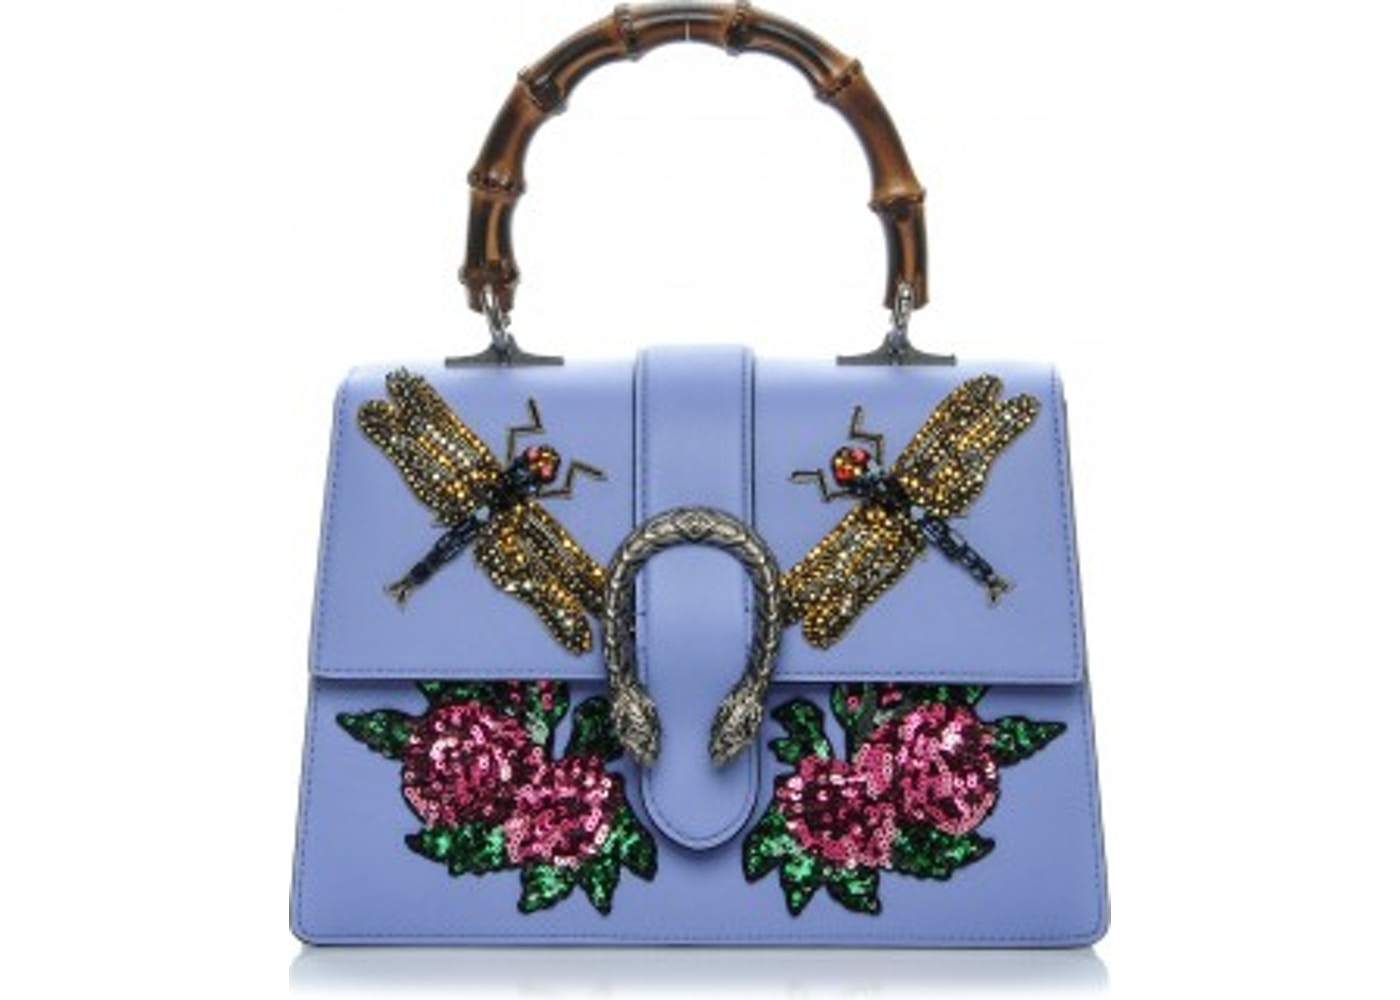 25b572b485c Gucci Dionysus Bamboo Top Handle GG Embroidered Dragonflies ...